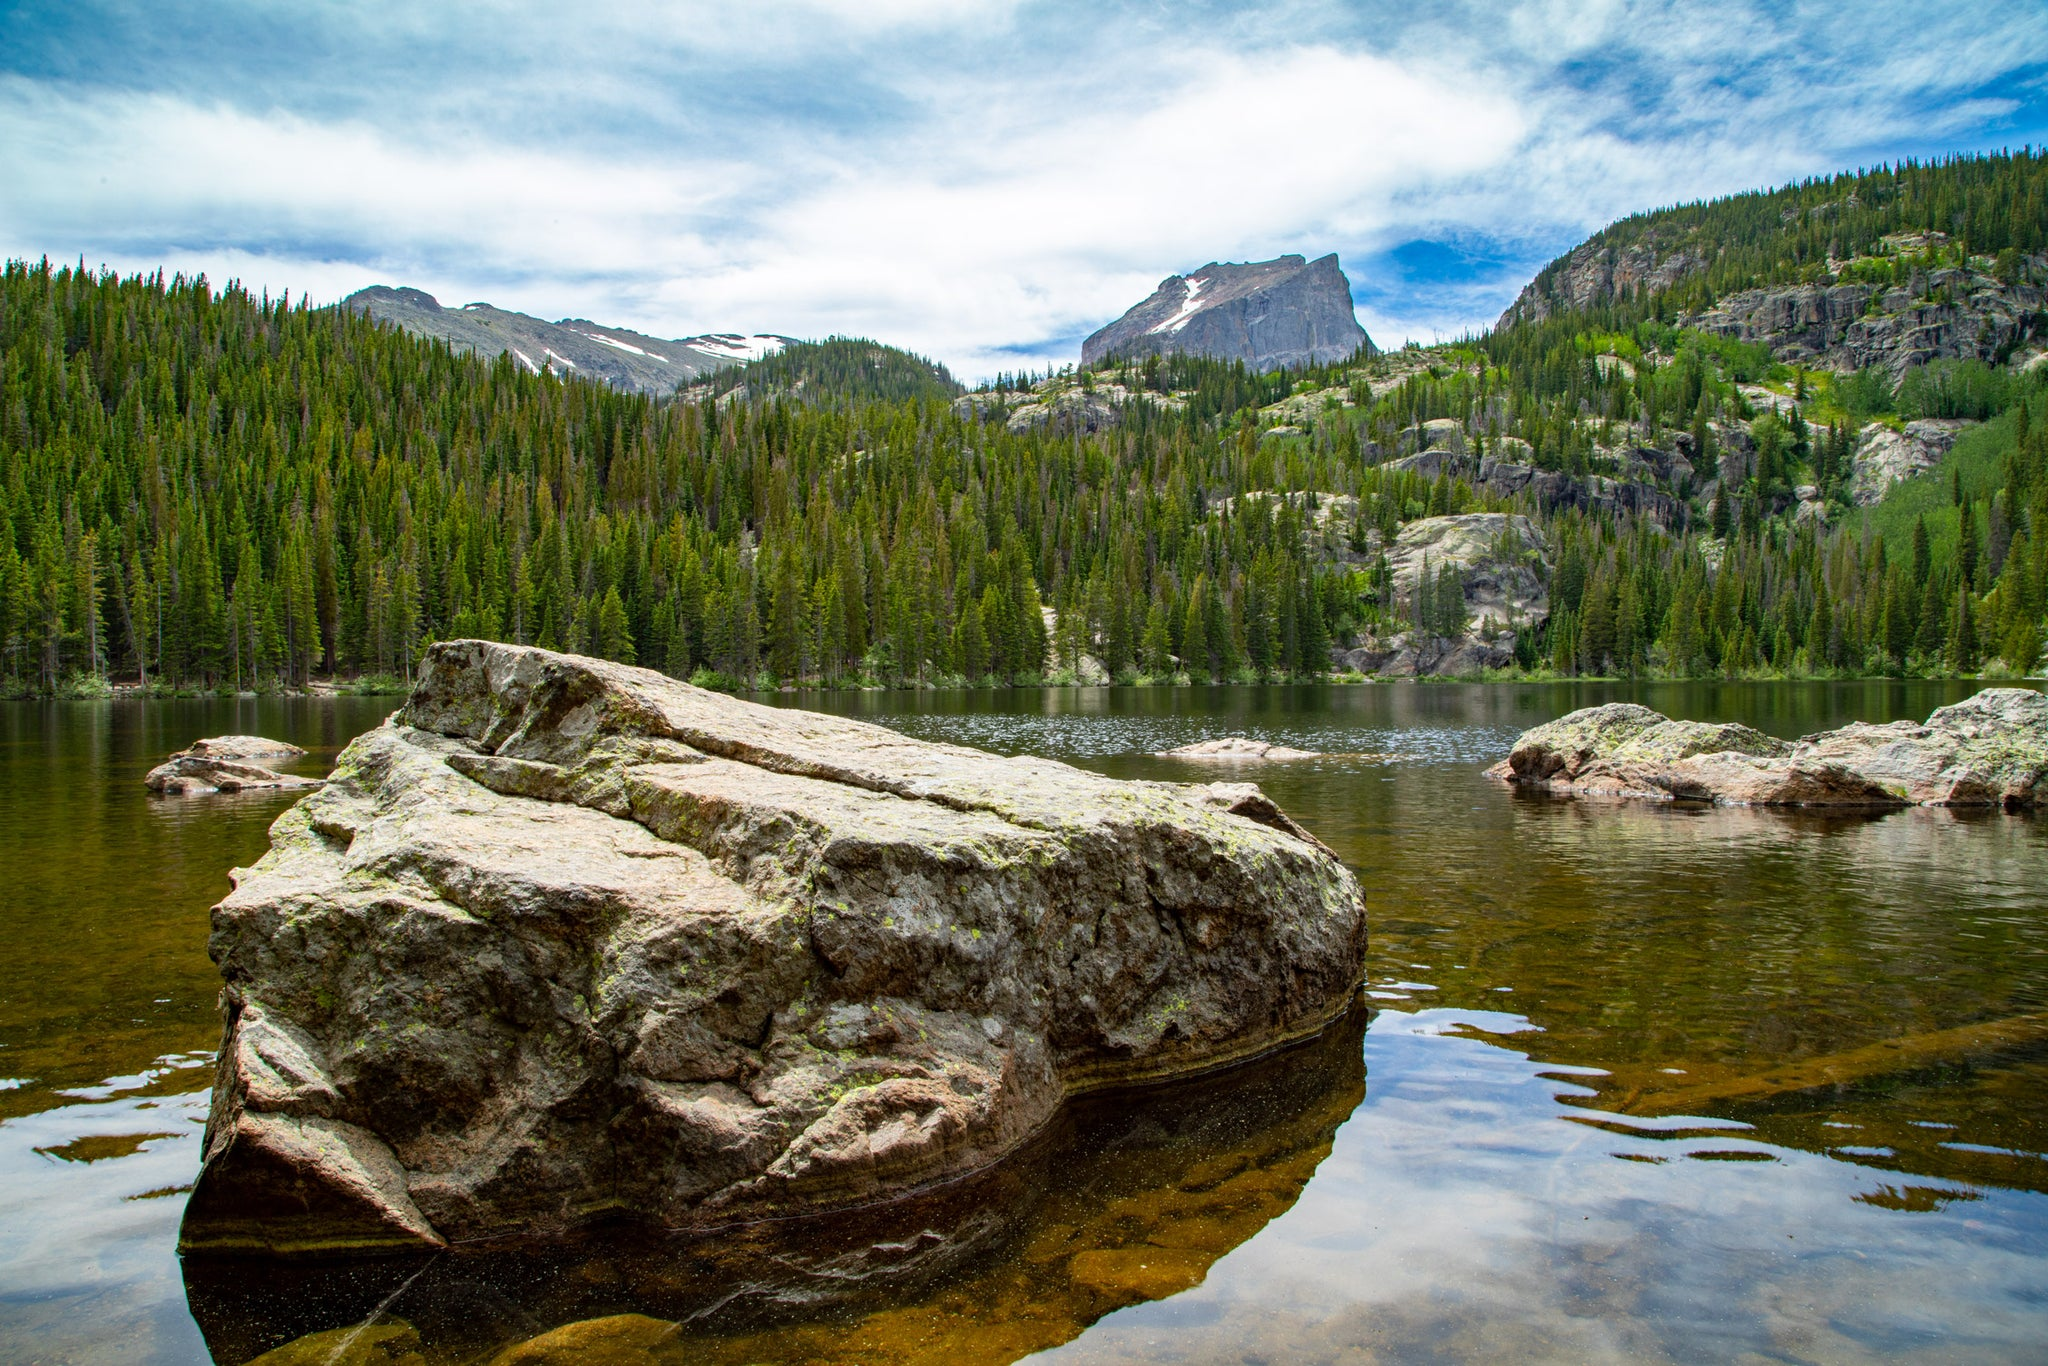 Bear Lake 1 in Rocky Mountain National Park